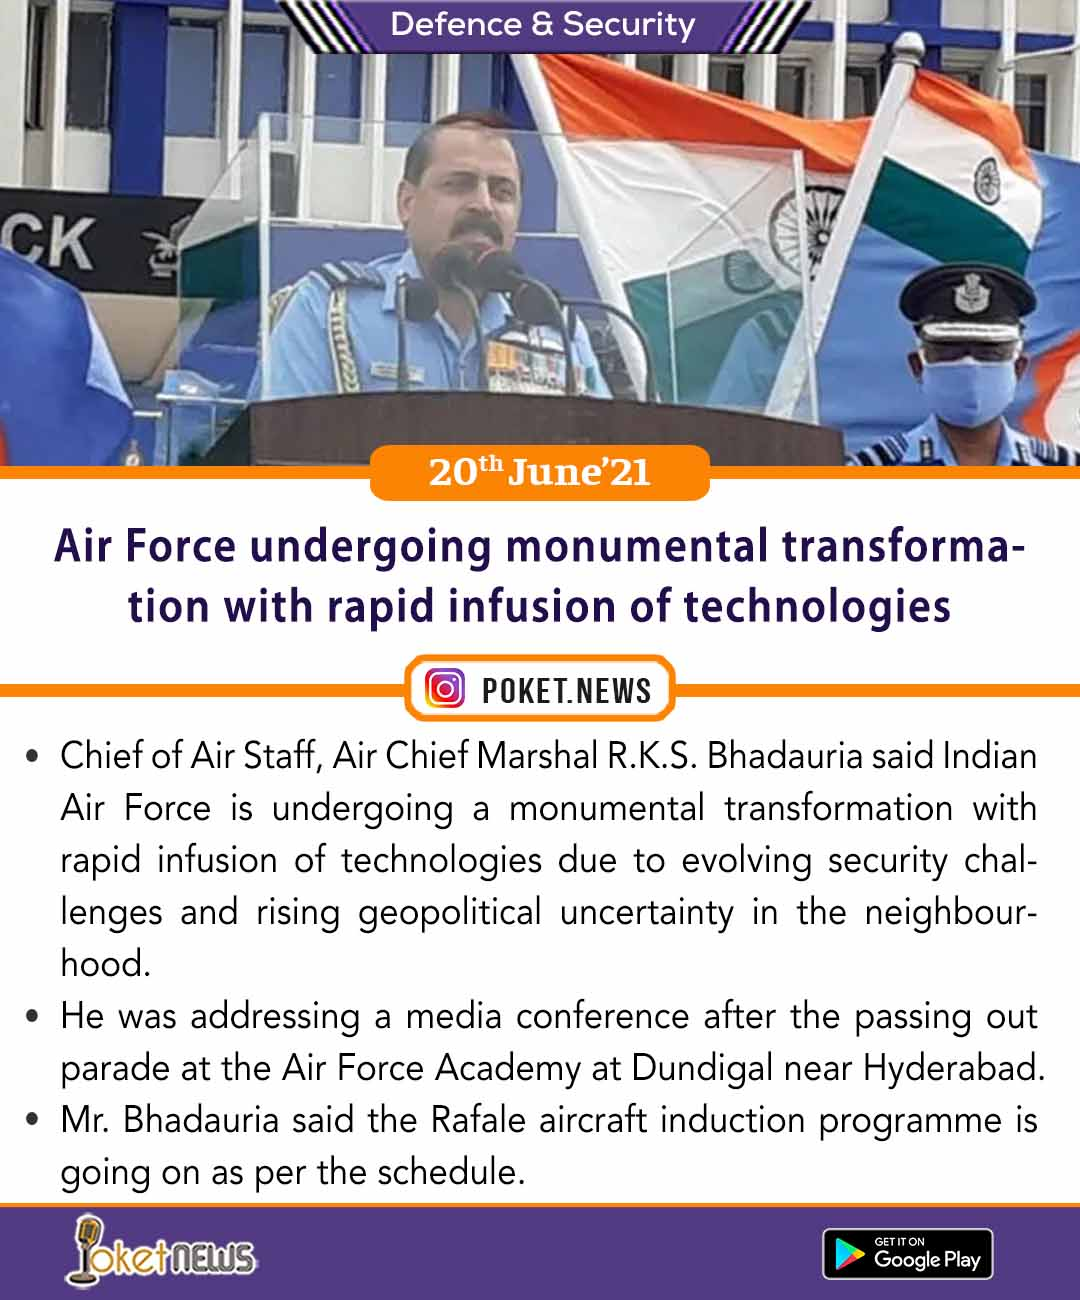 Air Force undergoing monumental transformation with rapid infusion of technologies